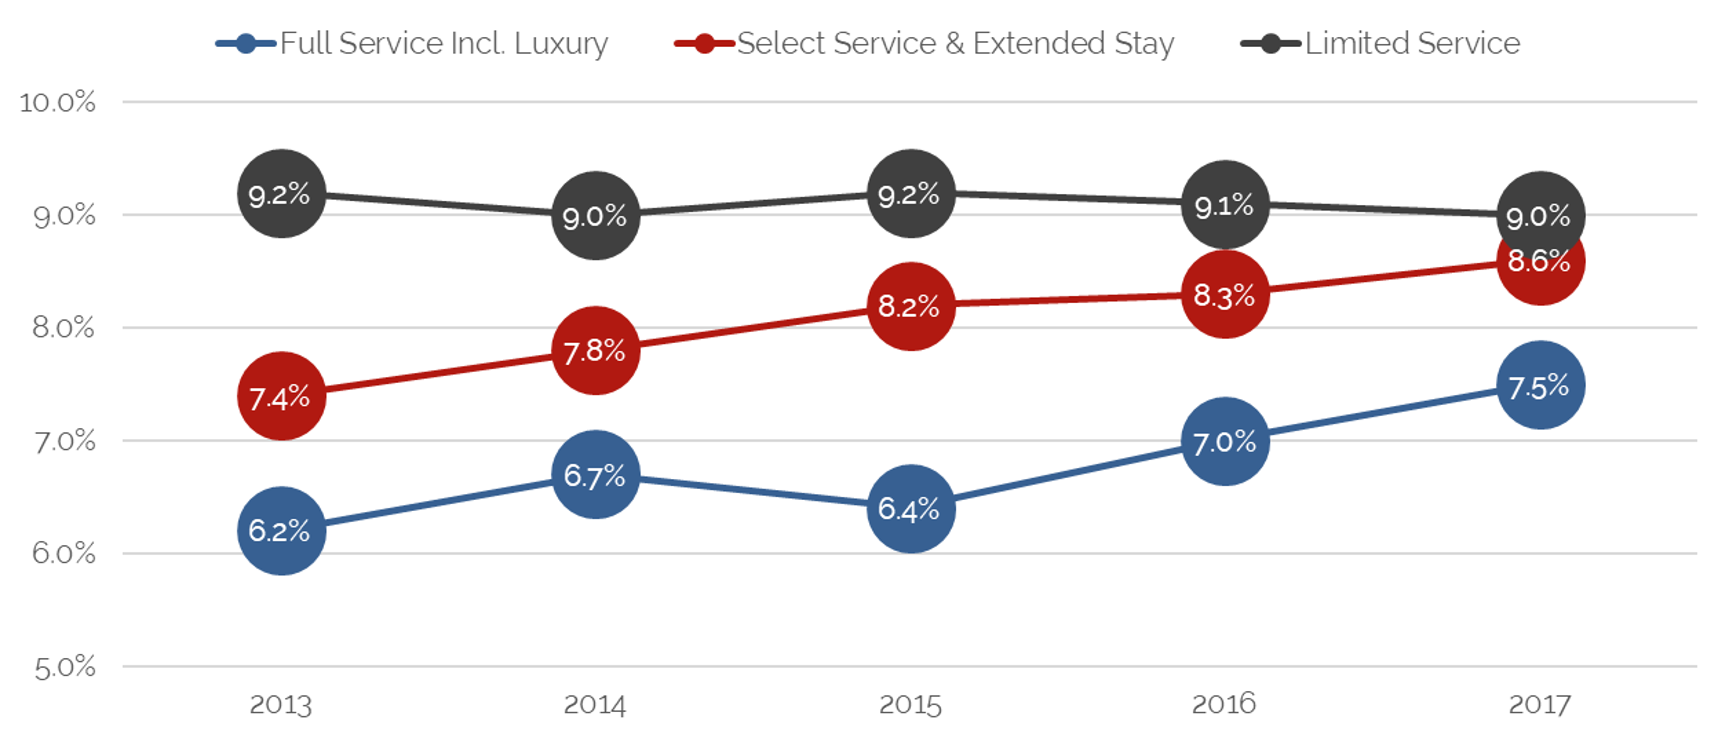 HVS | Impact of Countervailing Forces on Hotel Values and